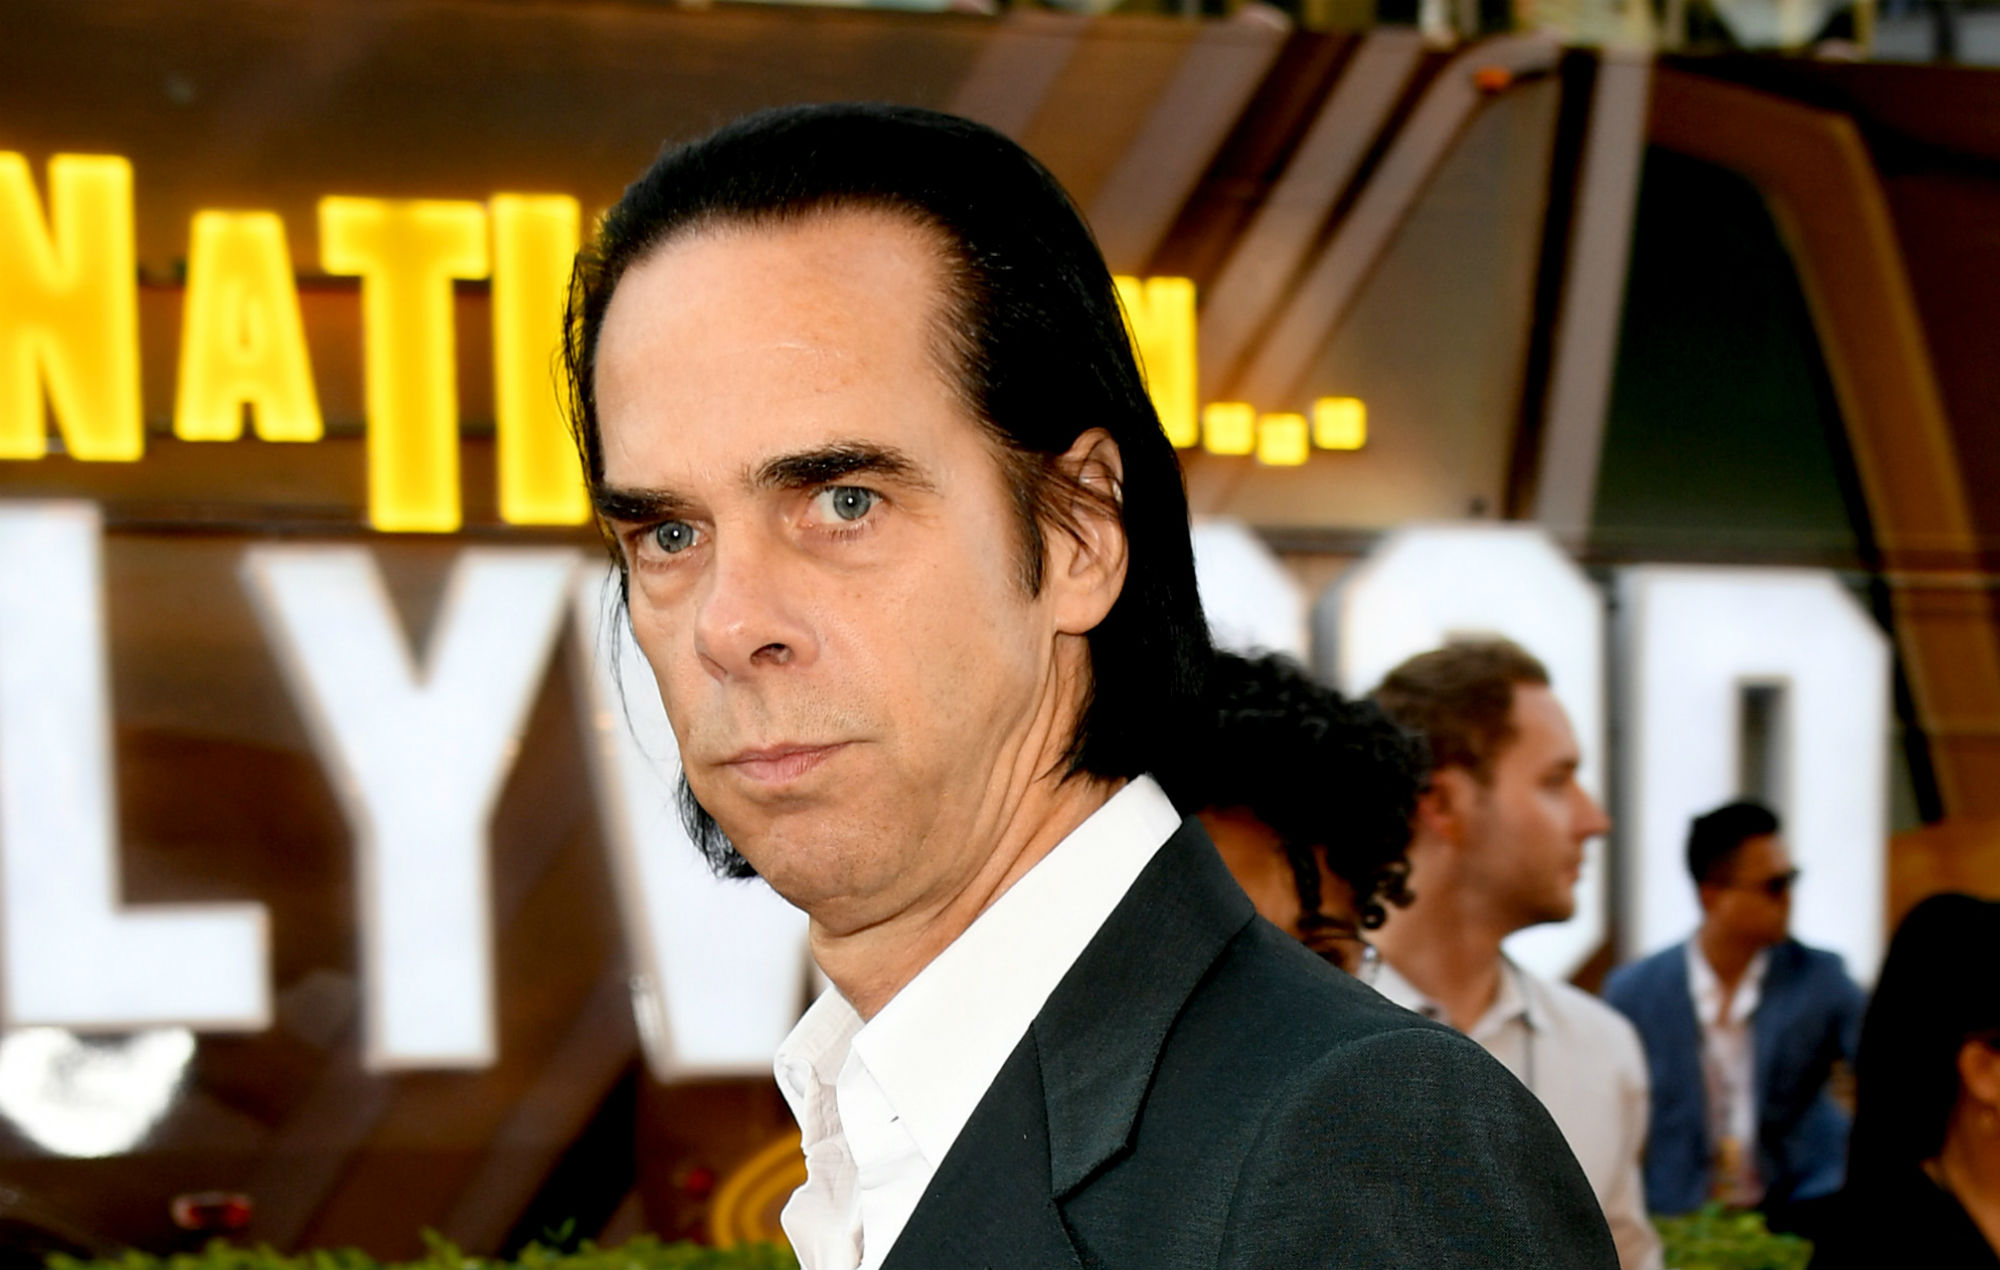 """Nick Cave says he's """"repelled"""" by 'woke' culture's """"self-righteous belief"""" and """"lack of humility"""""""